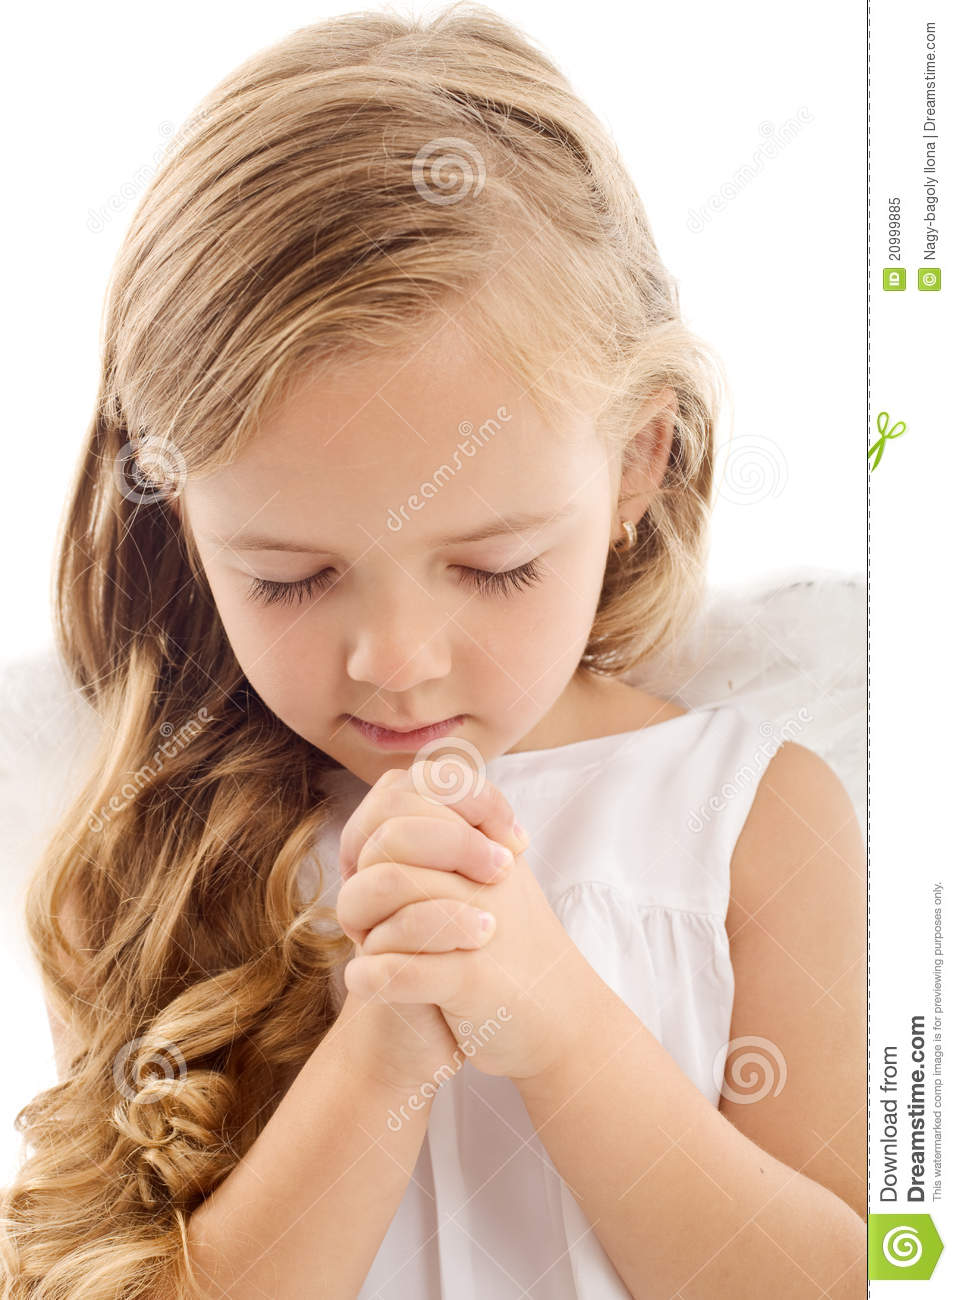 Little Girl Praying Royalty Free Stock Photo - Image: 20999885